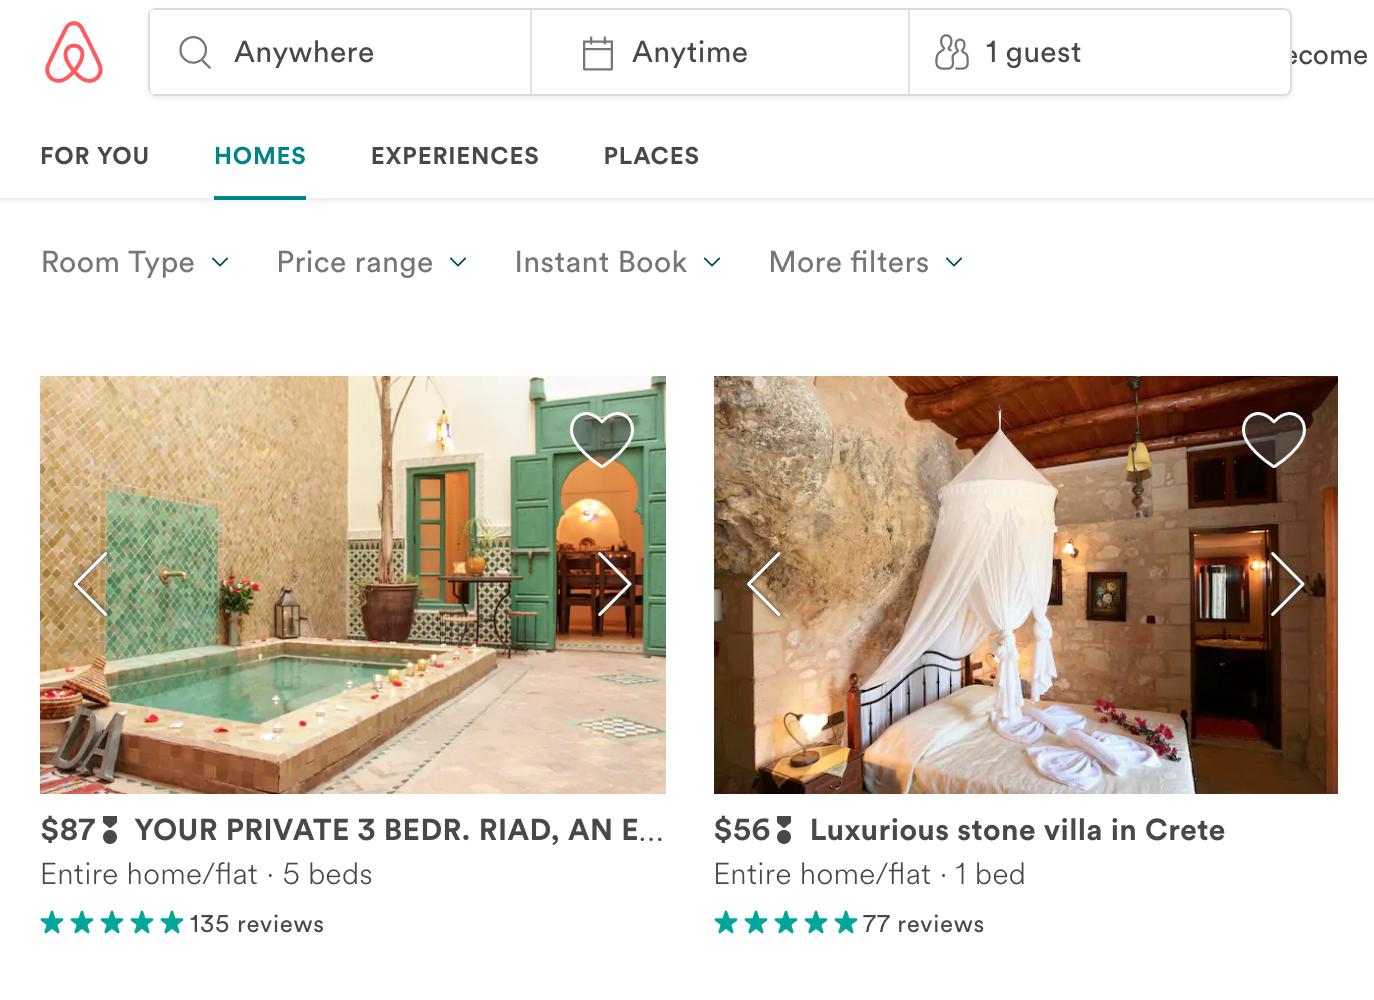 Choose an Airbnb, airbnb coupon code, airbnb discount code, airbnb promo code, airbnb promotion, save on your next airbnb, free airbnb money